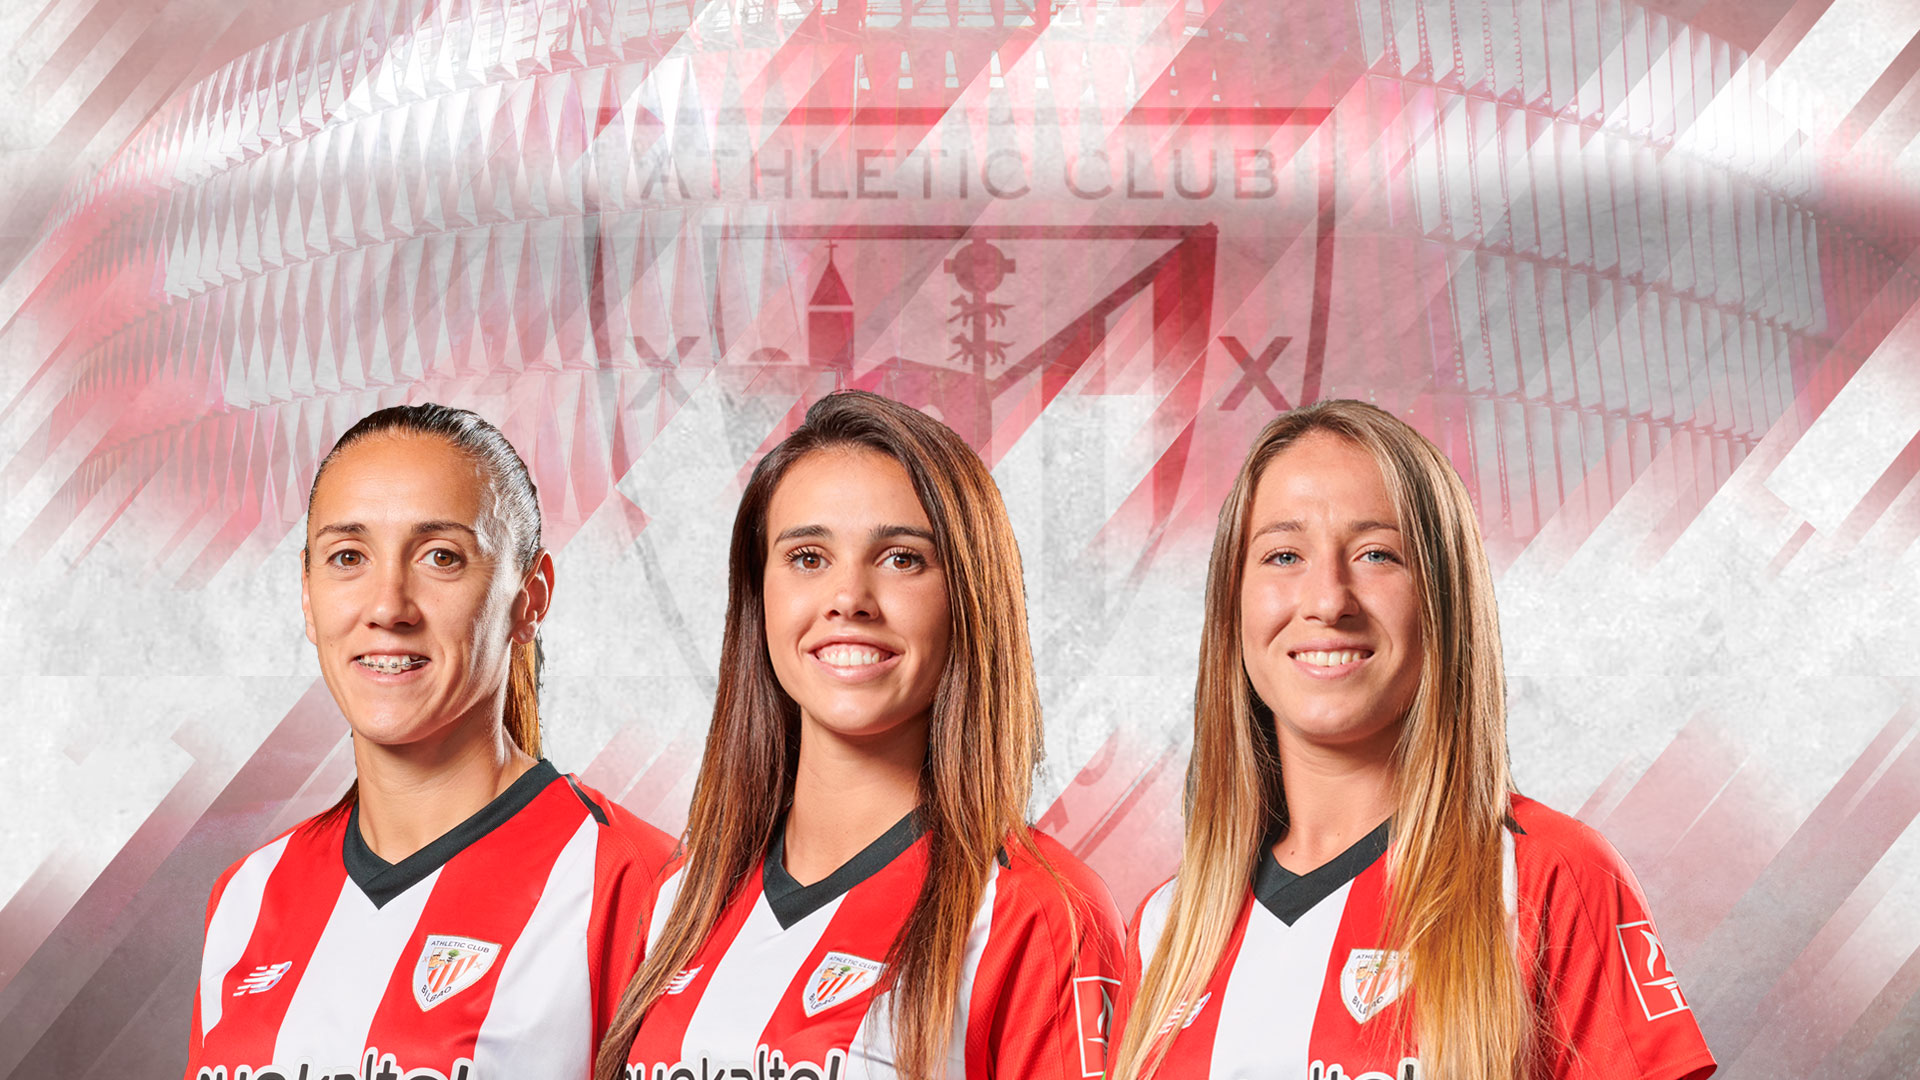 Vanesa Gimbert, Jone Ibáñez, and Ainhoa Álvarez renew with Athletic Club